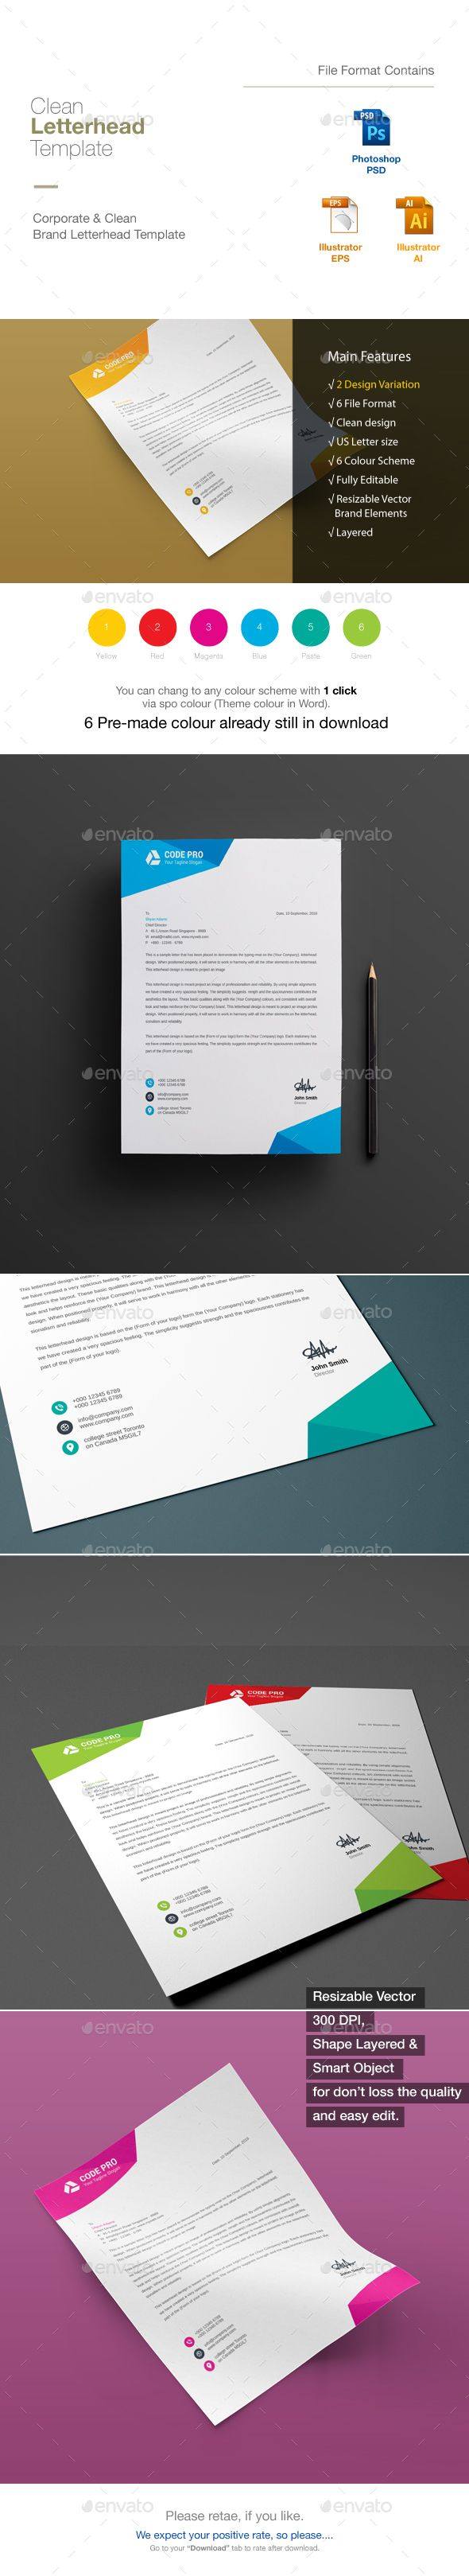 Letterhead — Photoshop PSD #corporate #bill • Download ➝ https://graphicriver.net/item/letterhead/18921948?ref=pxcr